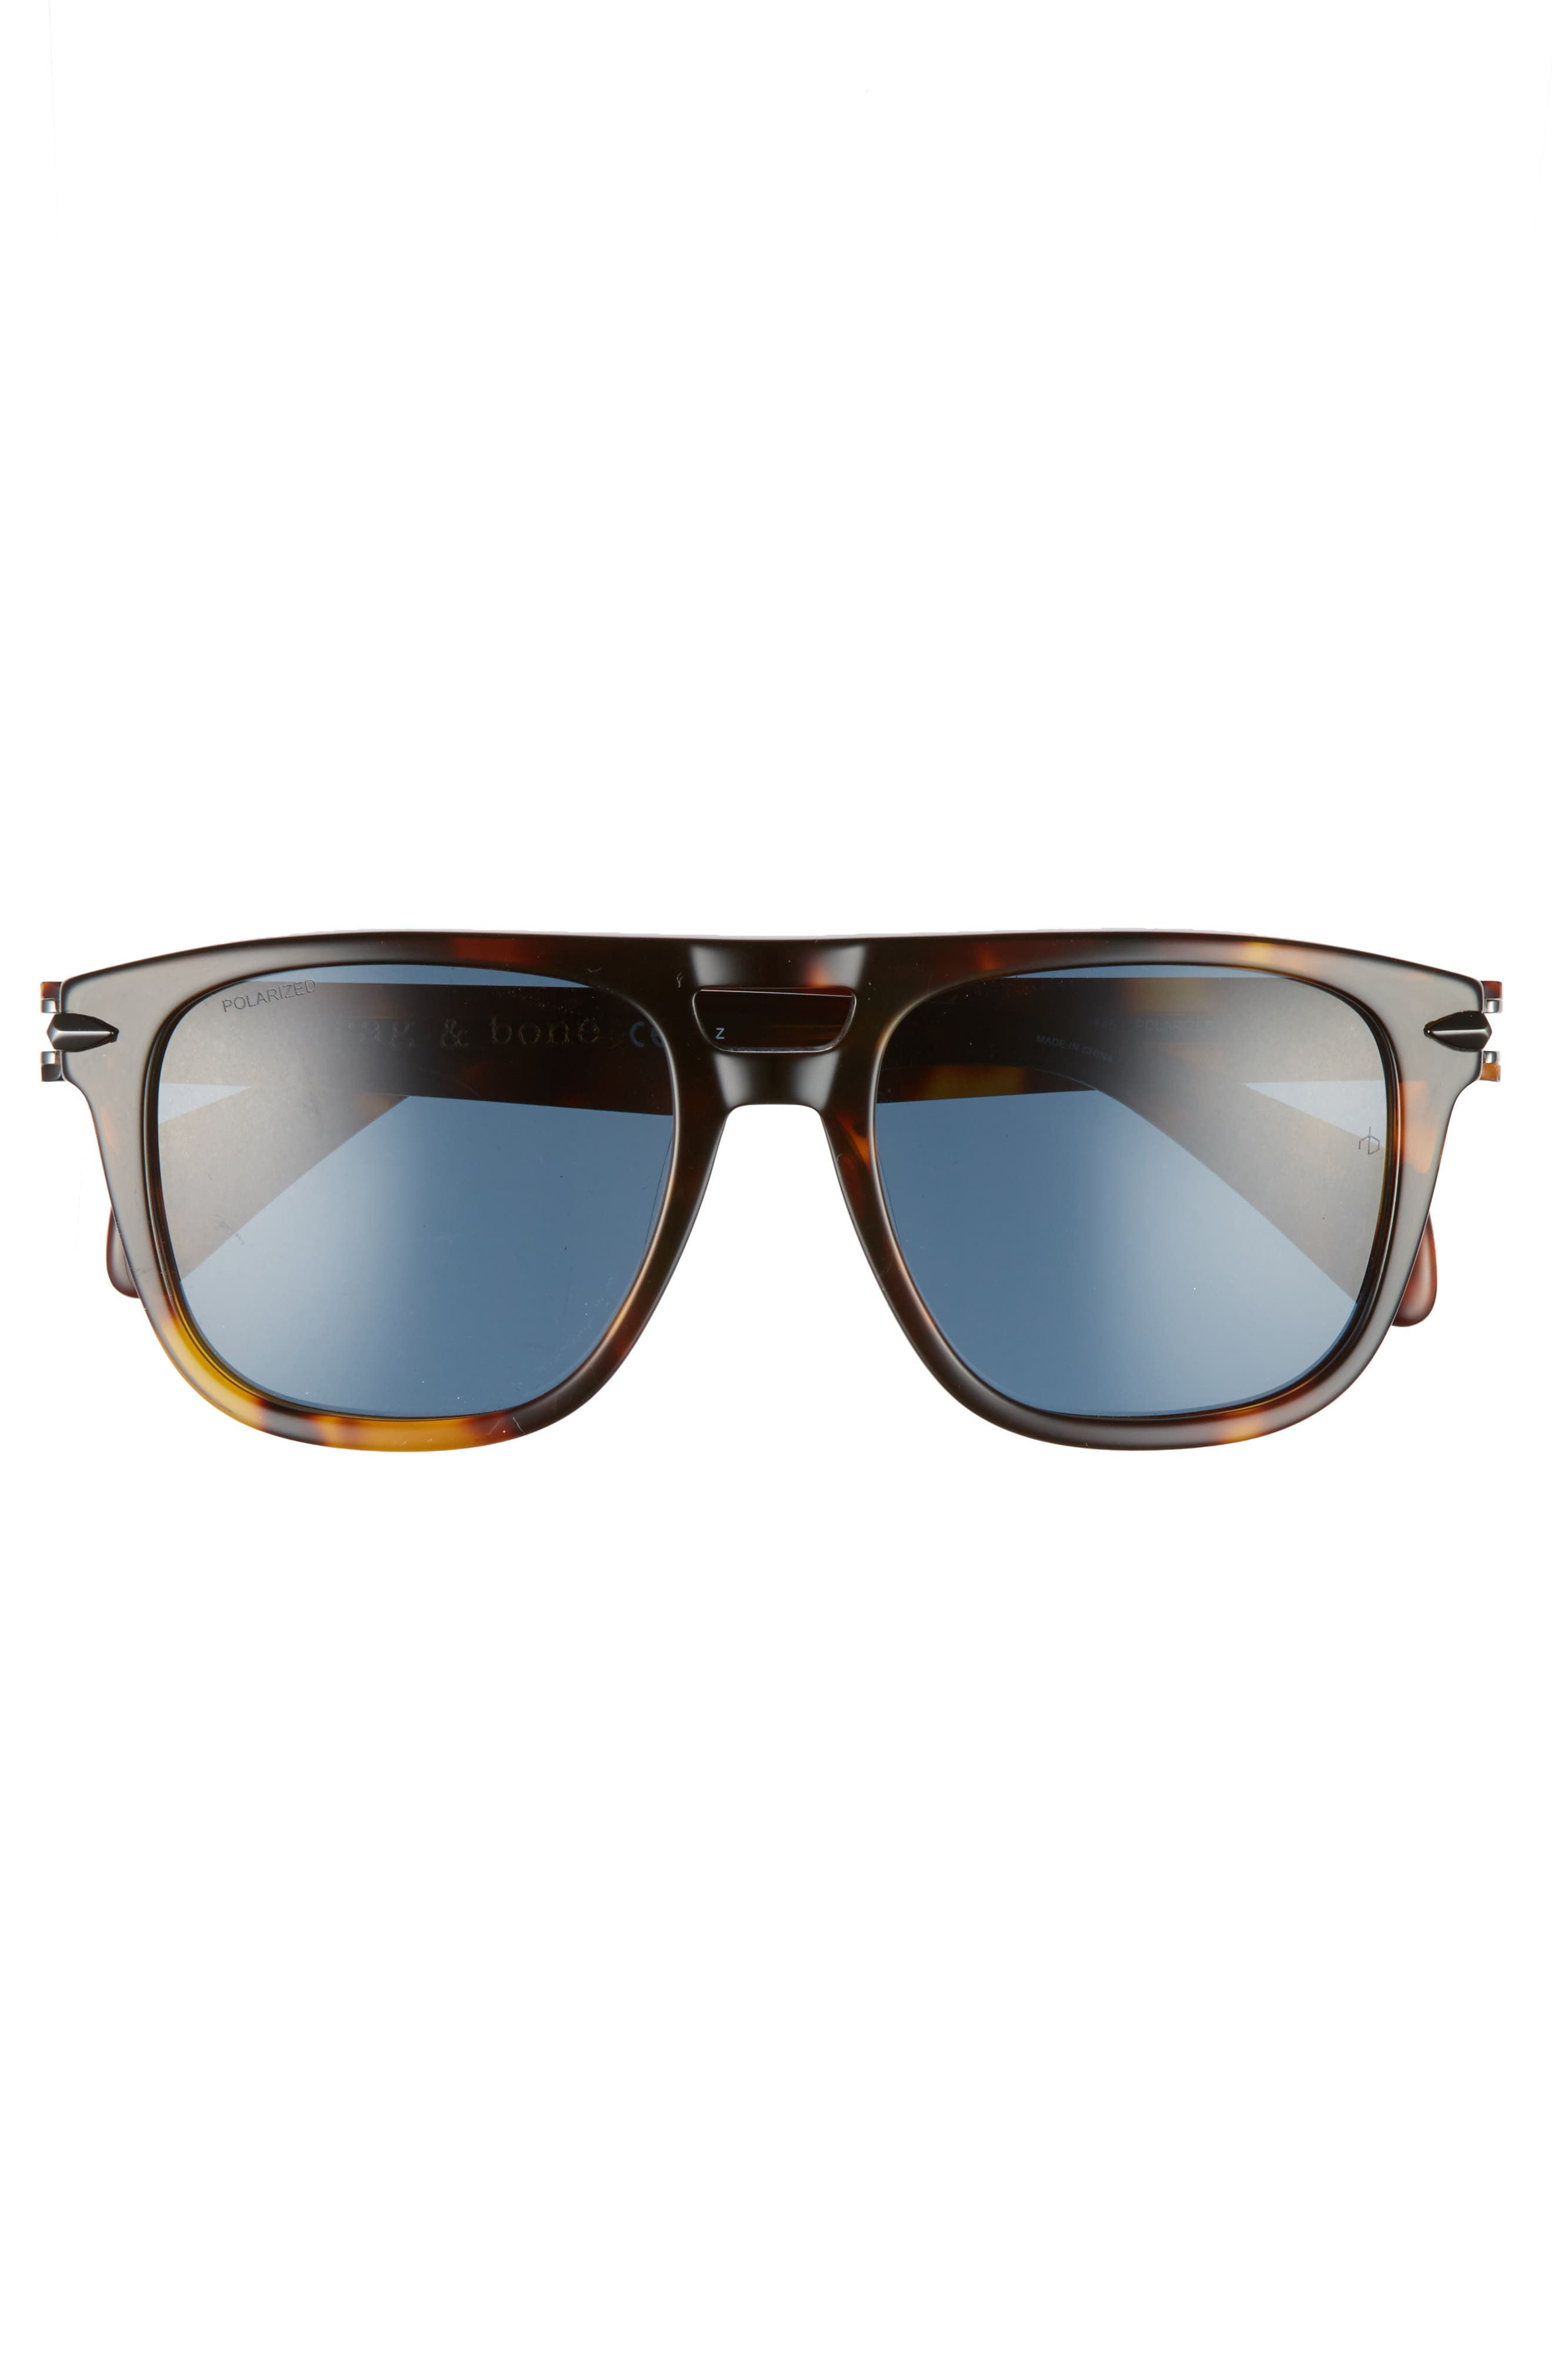 53mm Polarized Sunglasses,                             Alternate thumbnail 2, color,                             DARK HAVANA POLAR